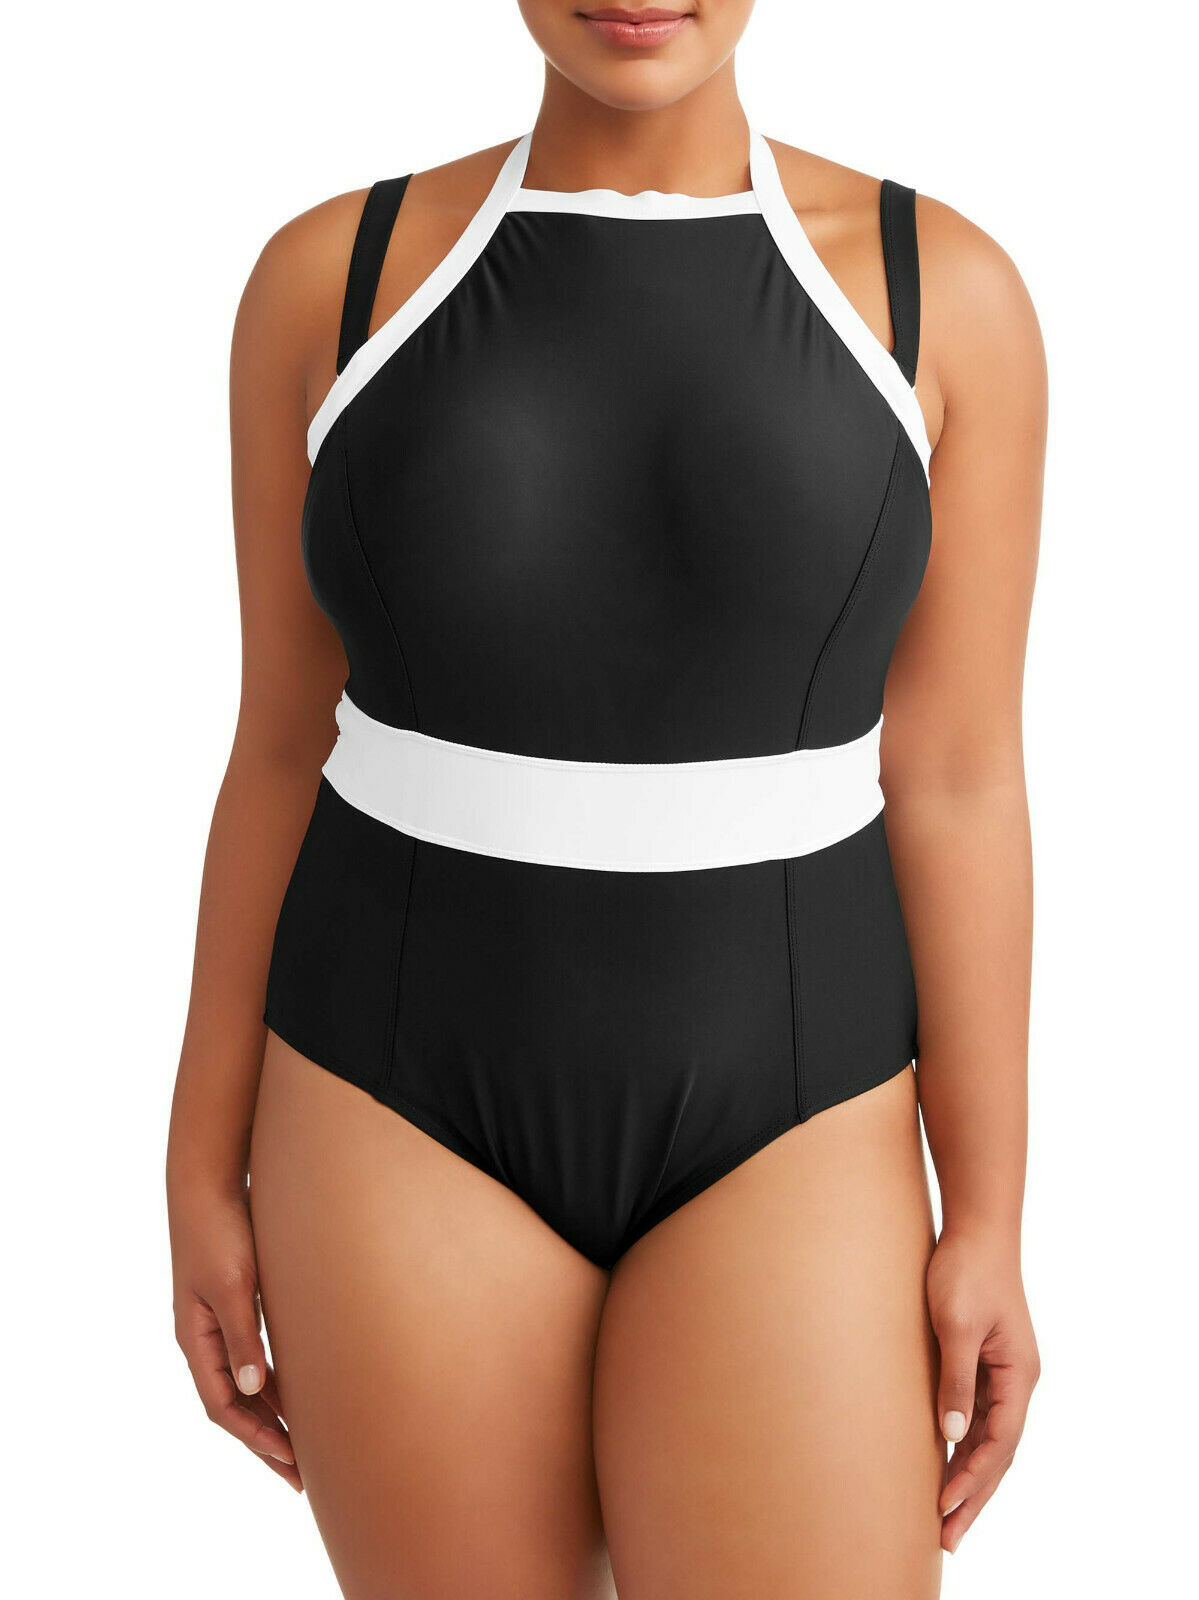 swimsuits for big breasted women